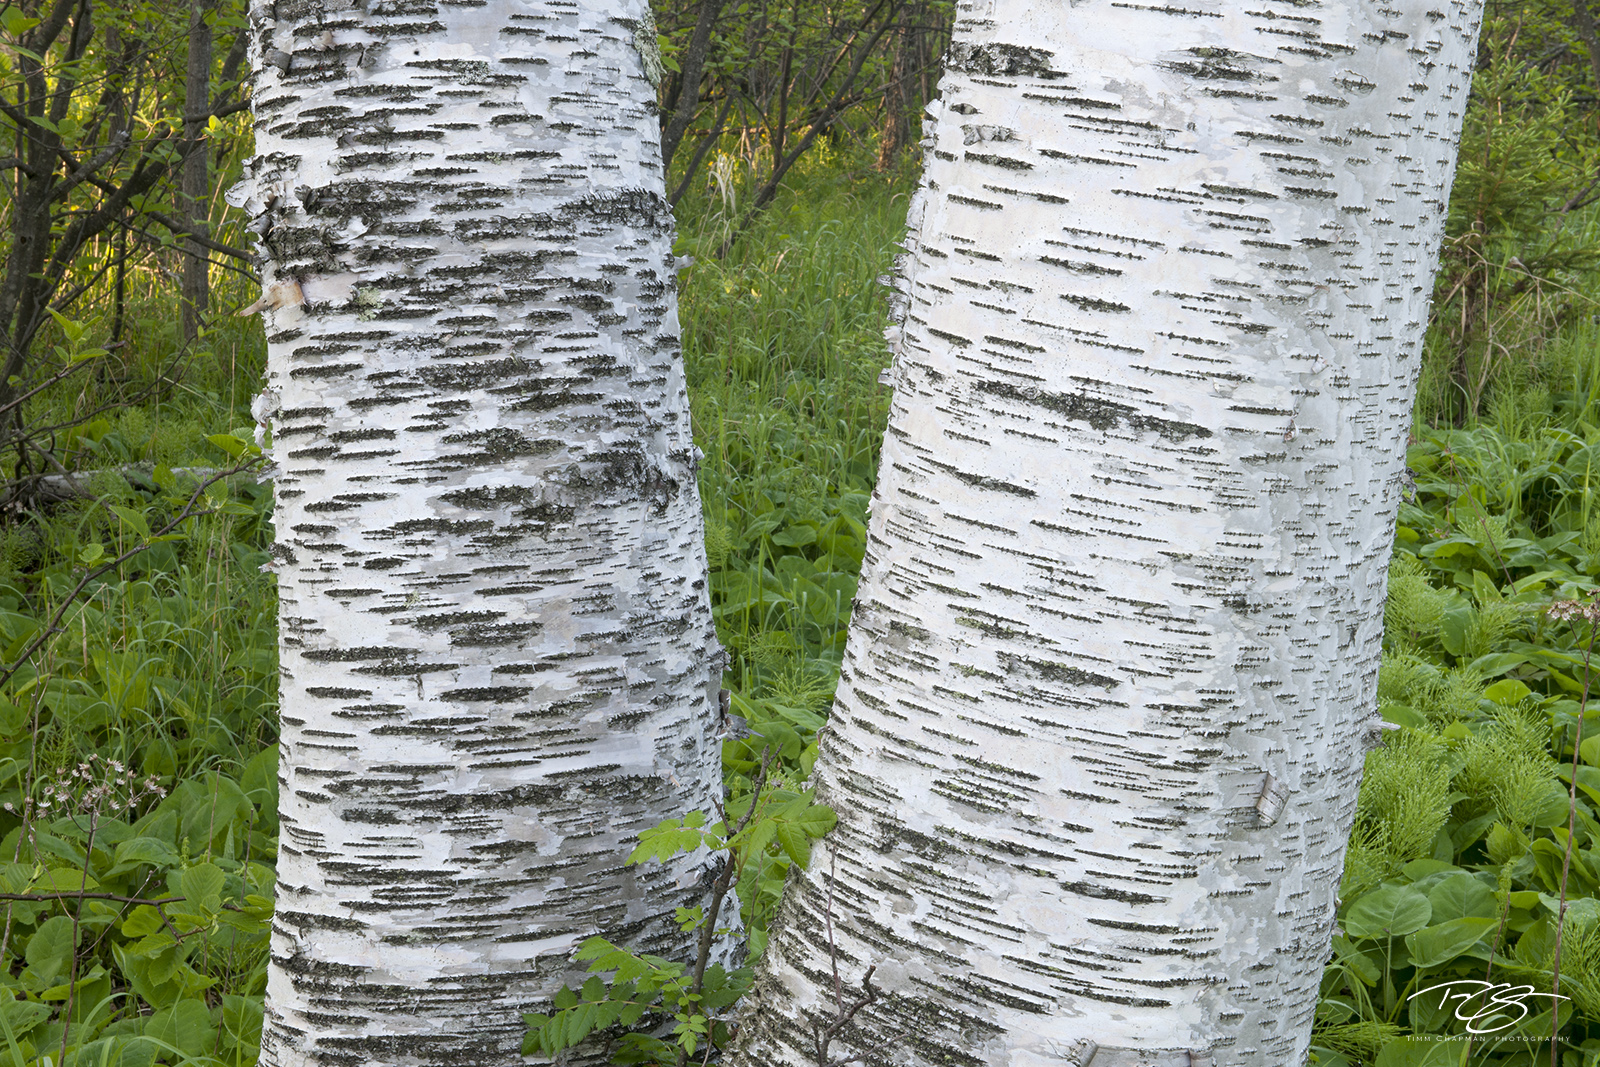 birch trees, birch, tree, trees, birches, birch forest, forest, bark, green, white, birch bark, minnesota, wisconsin, michigan, patterns, white birch, abstract, photo